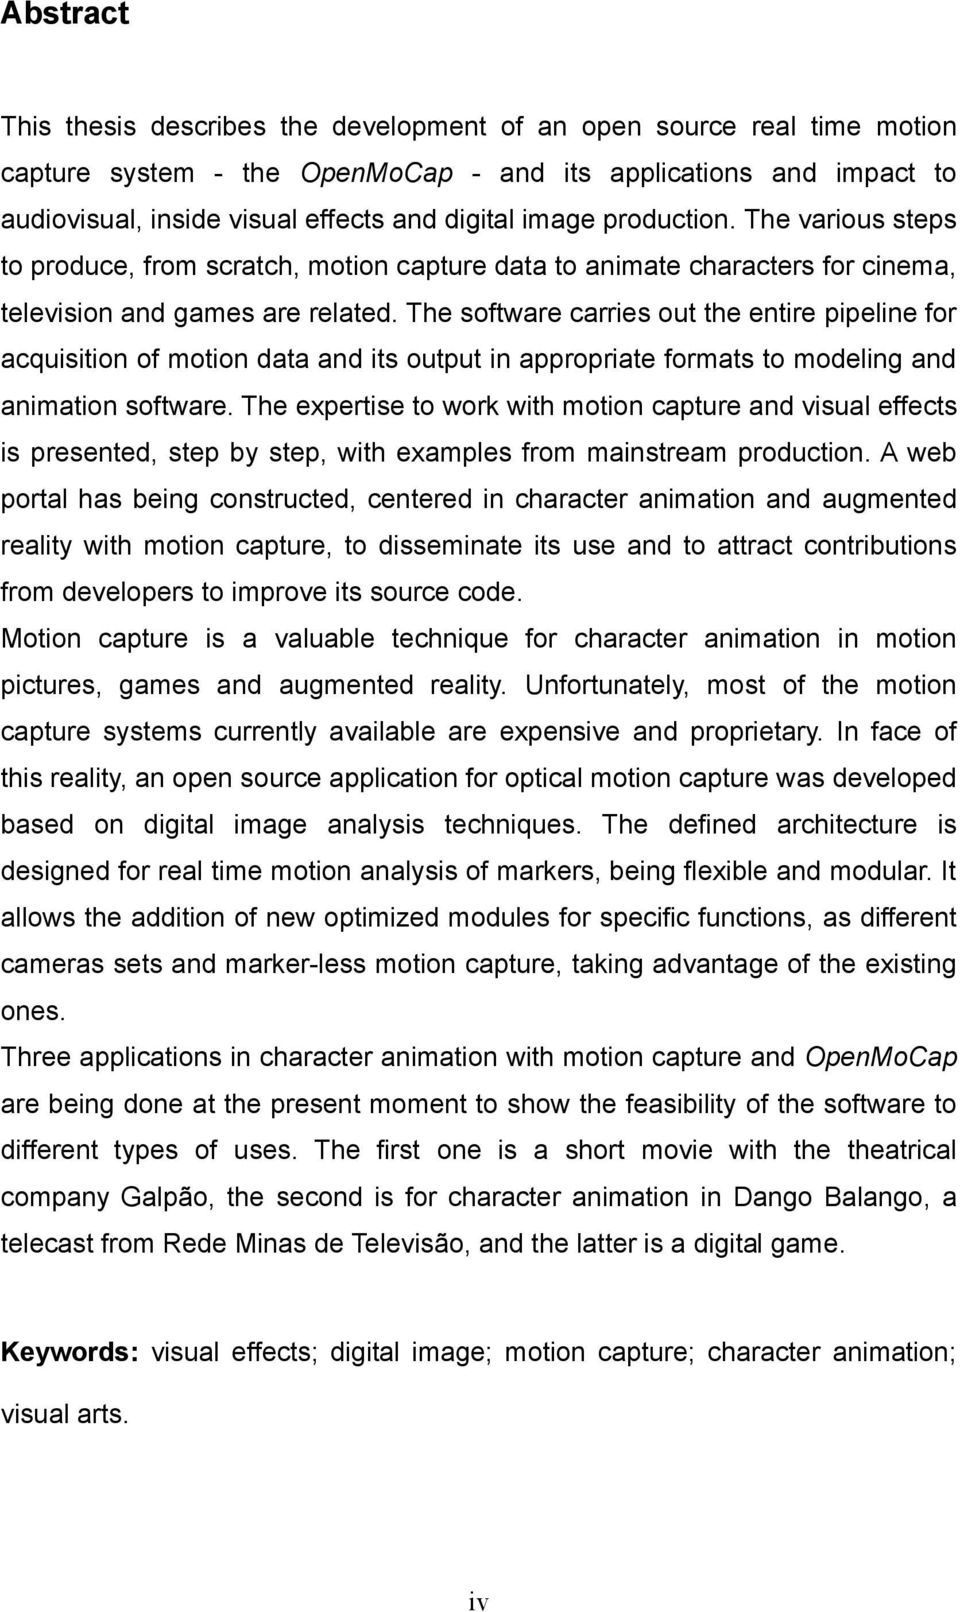 The software carries out the entire pipeline for acquisition of motion data and its output in appropriate formats to modeling and animation software.